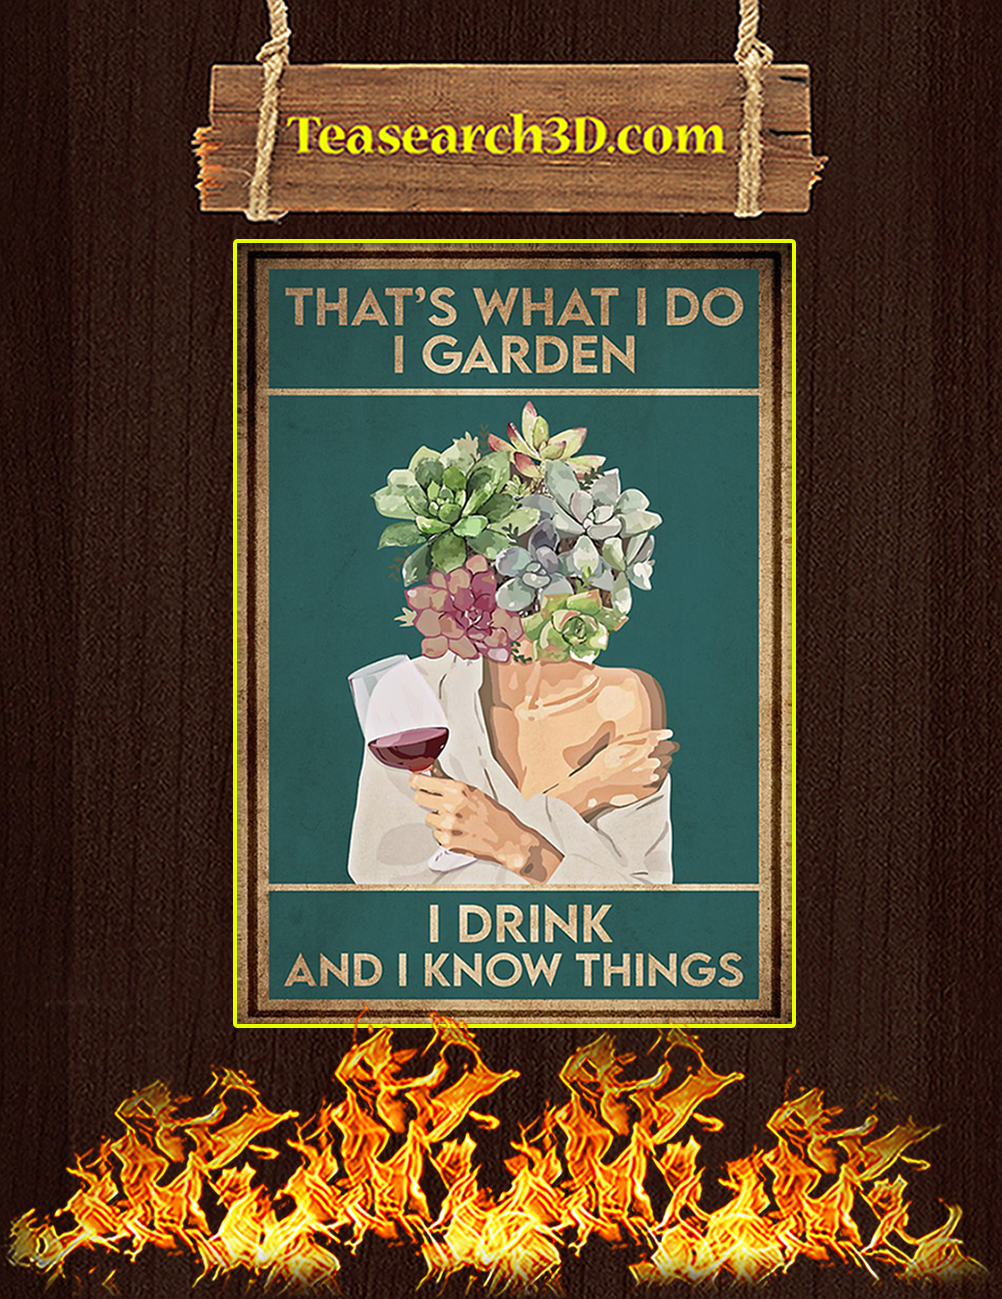 Pot head that's what I do I garden I drink and I know things poster